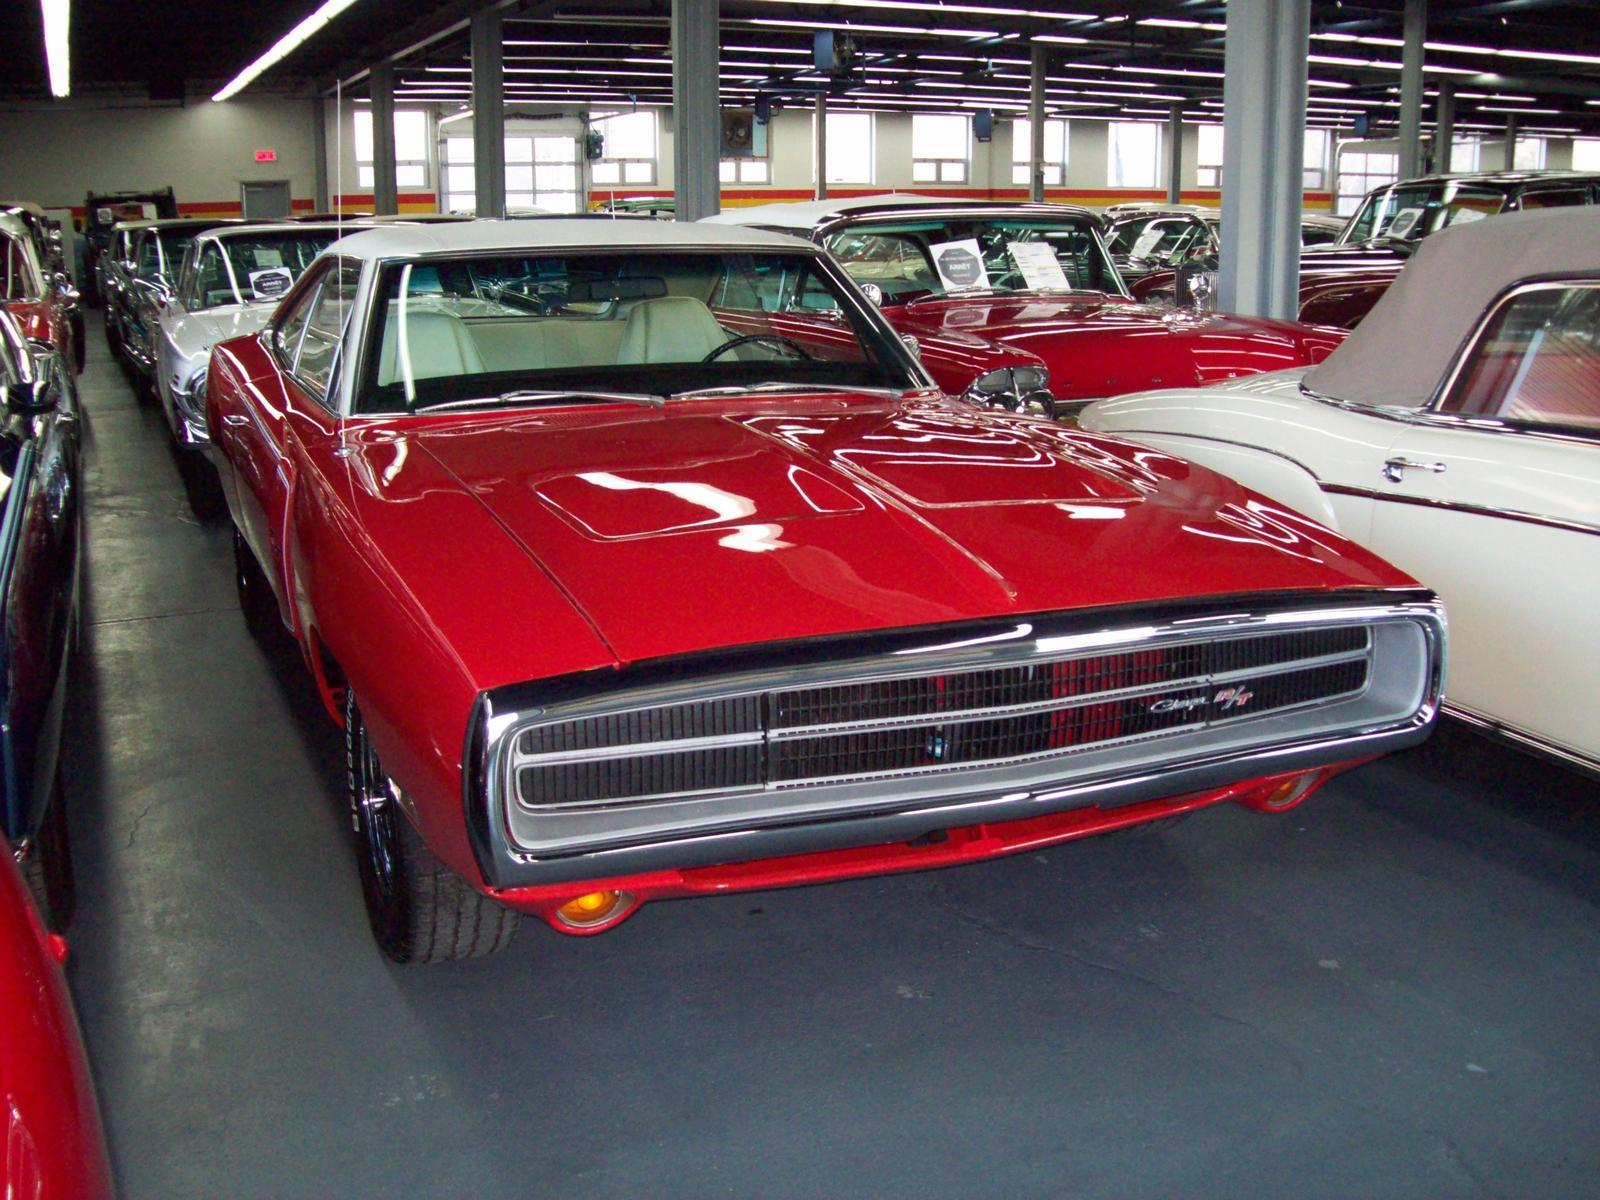 Used 1970 Dodge Charger RT 440 for sale in Saint-Léonard - John ...